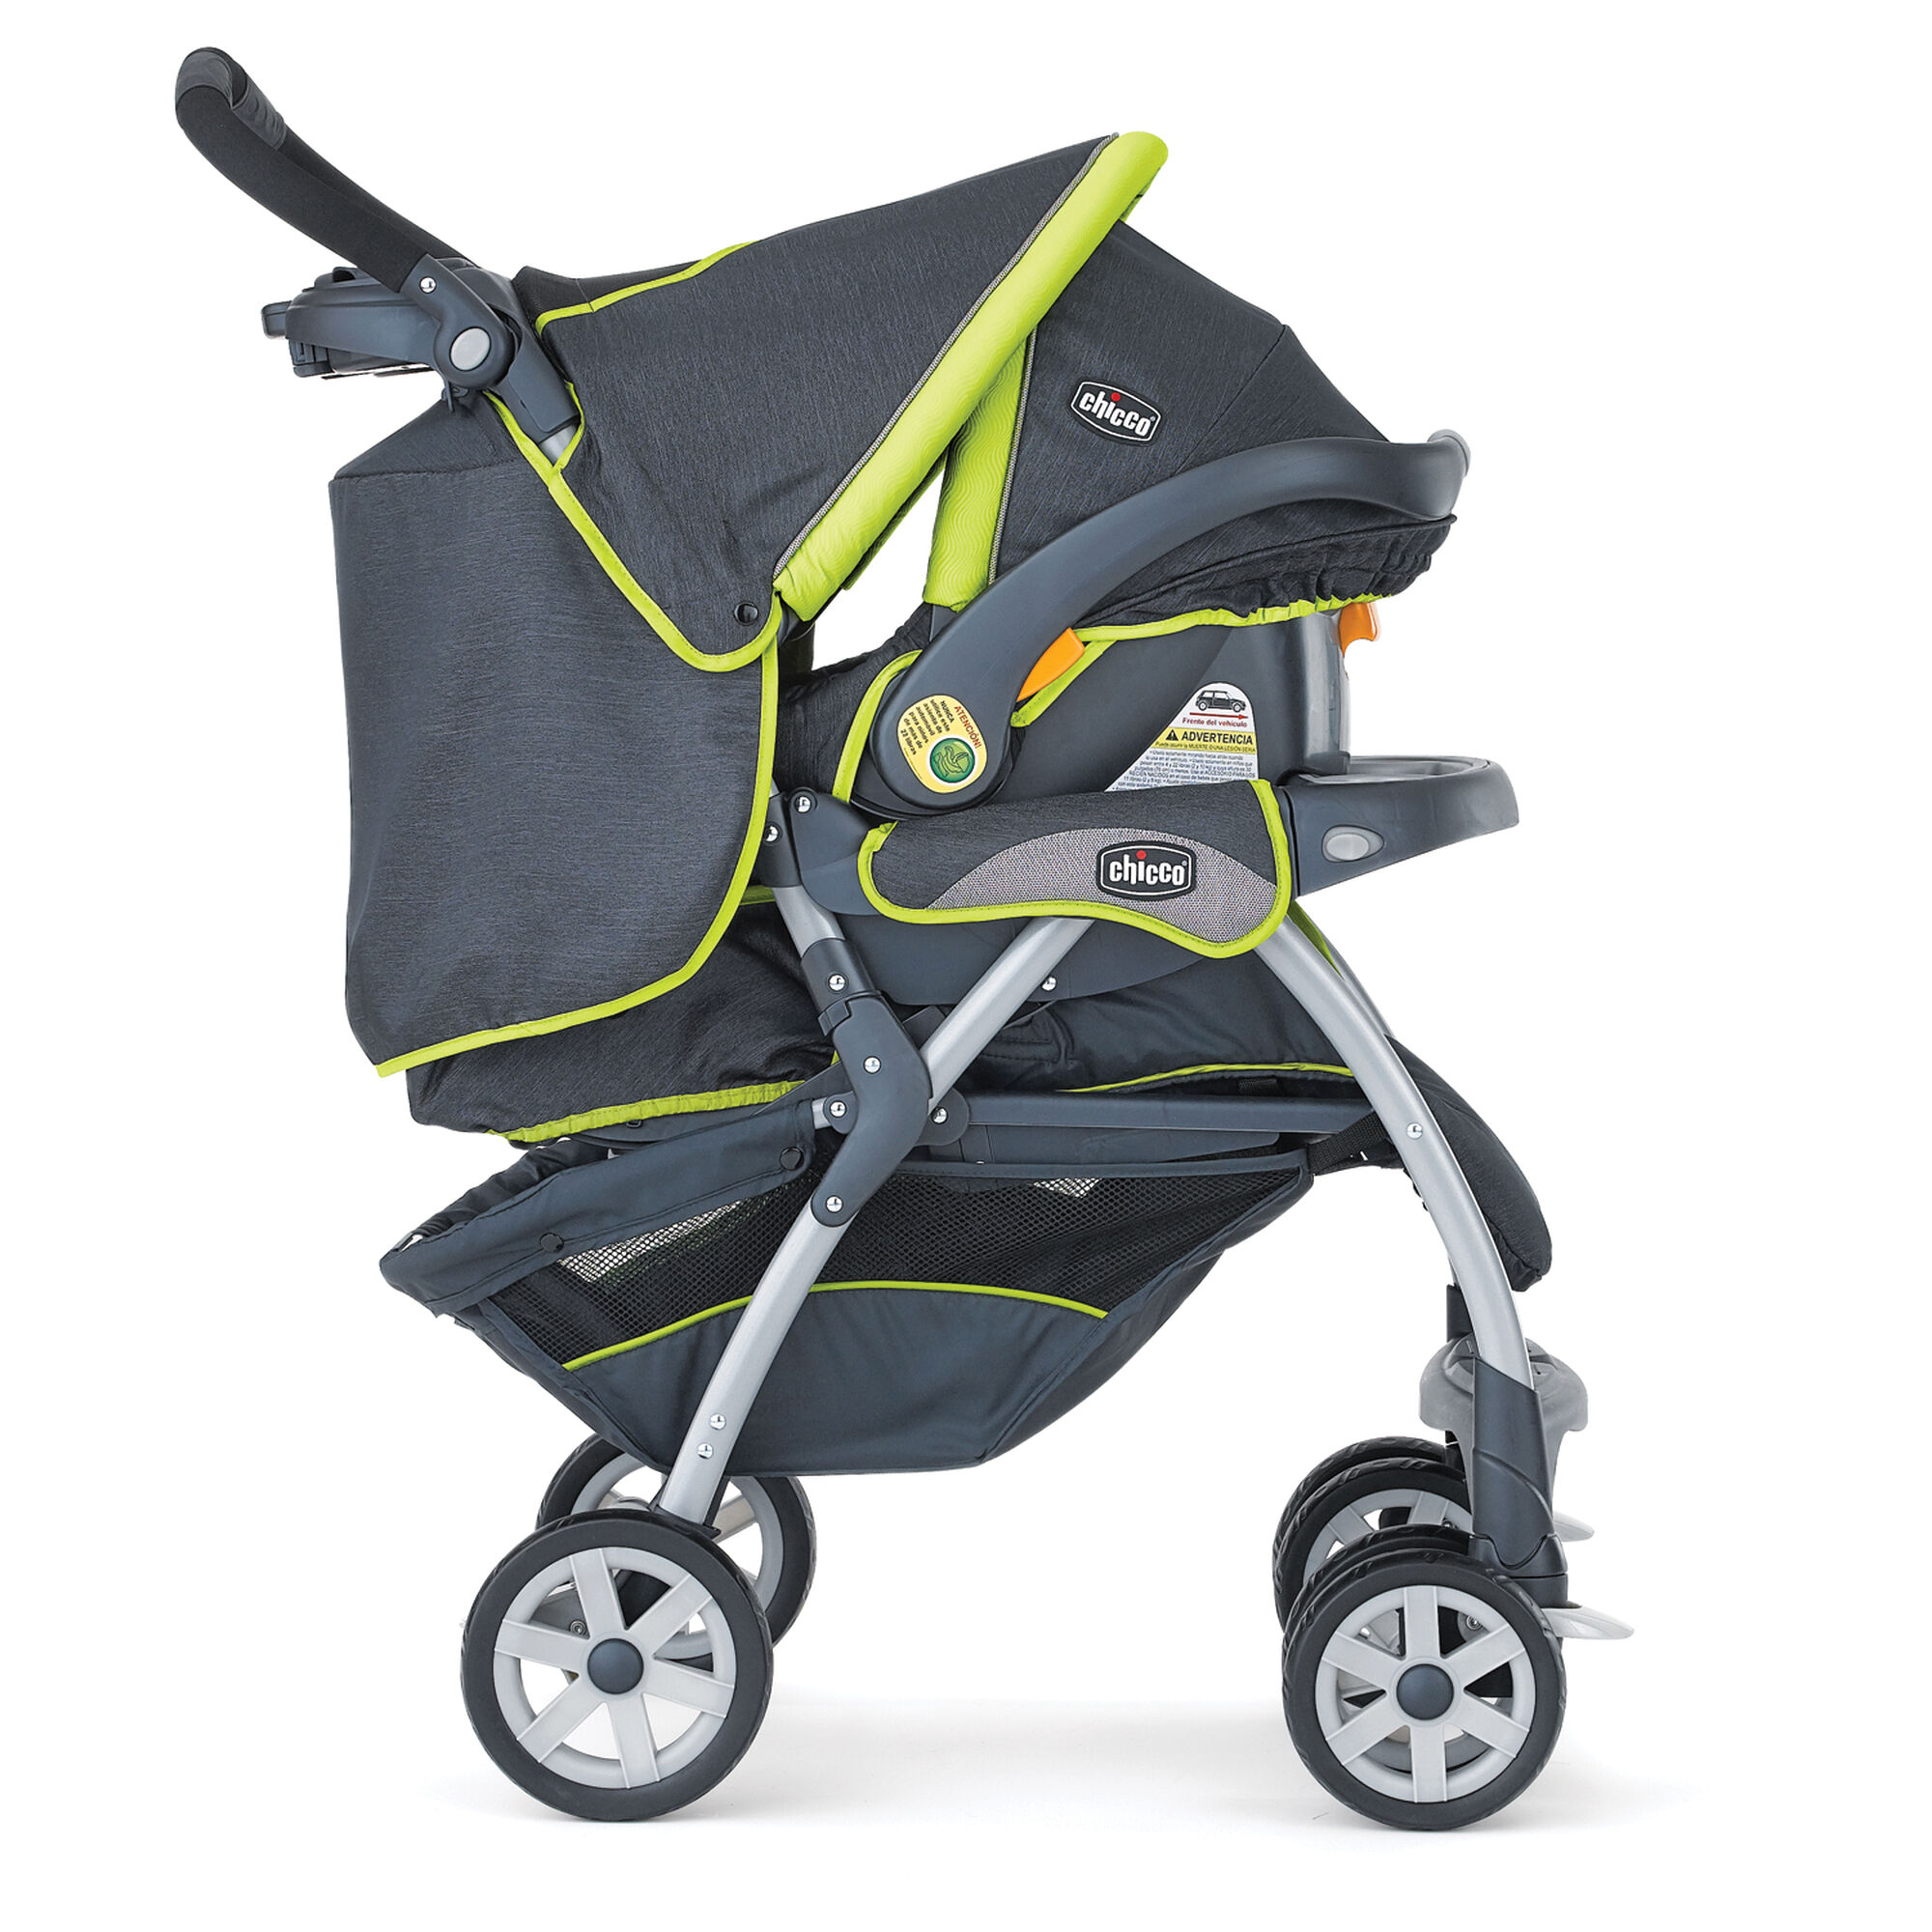 Cortina Se Travel System Reviews